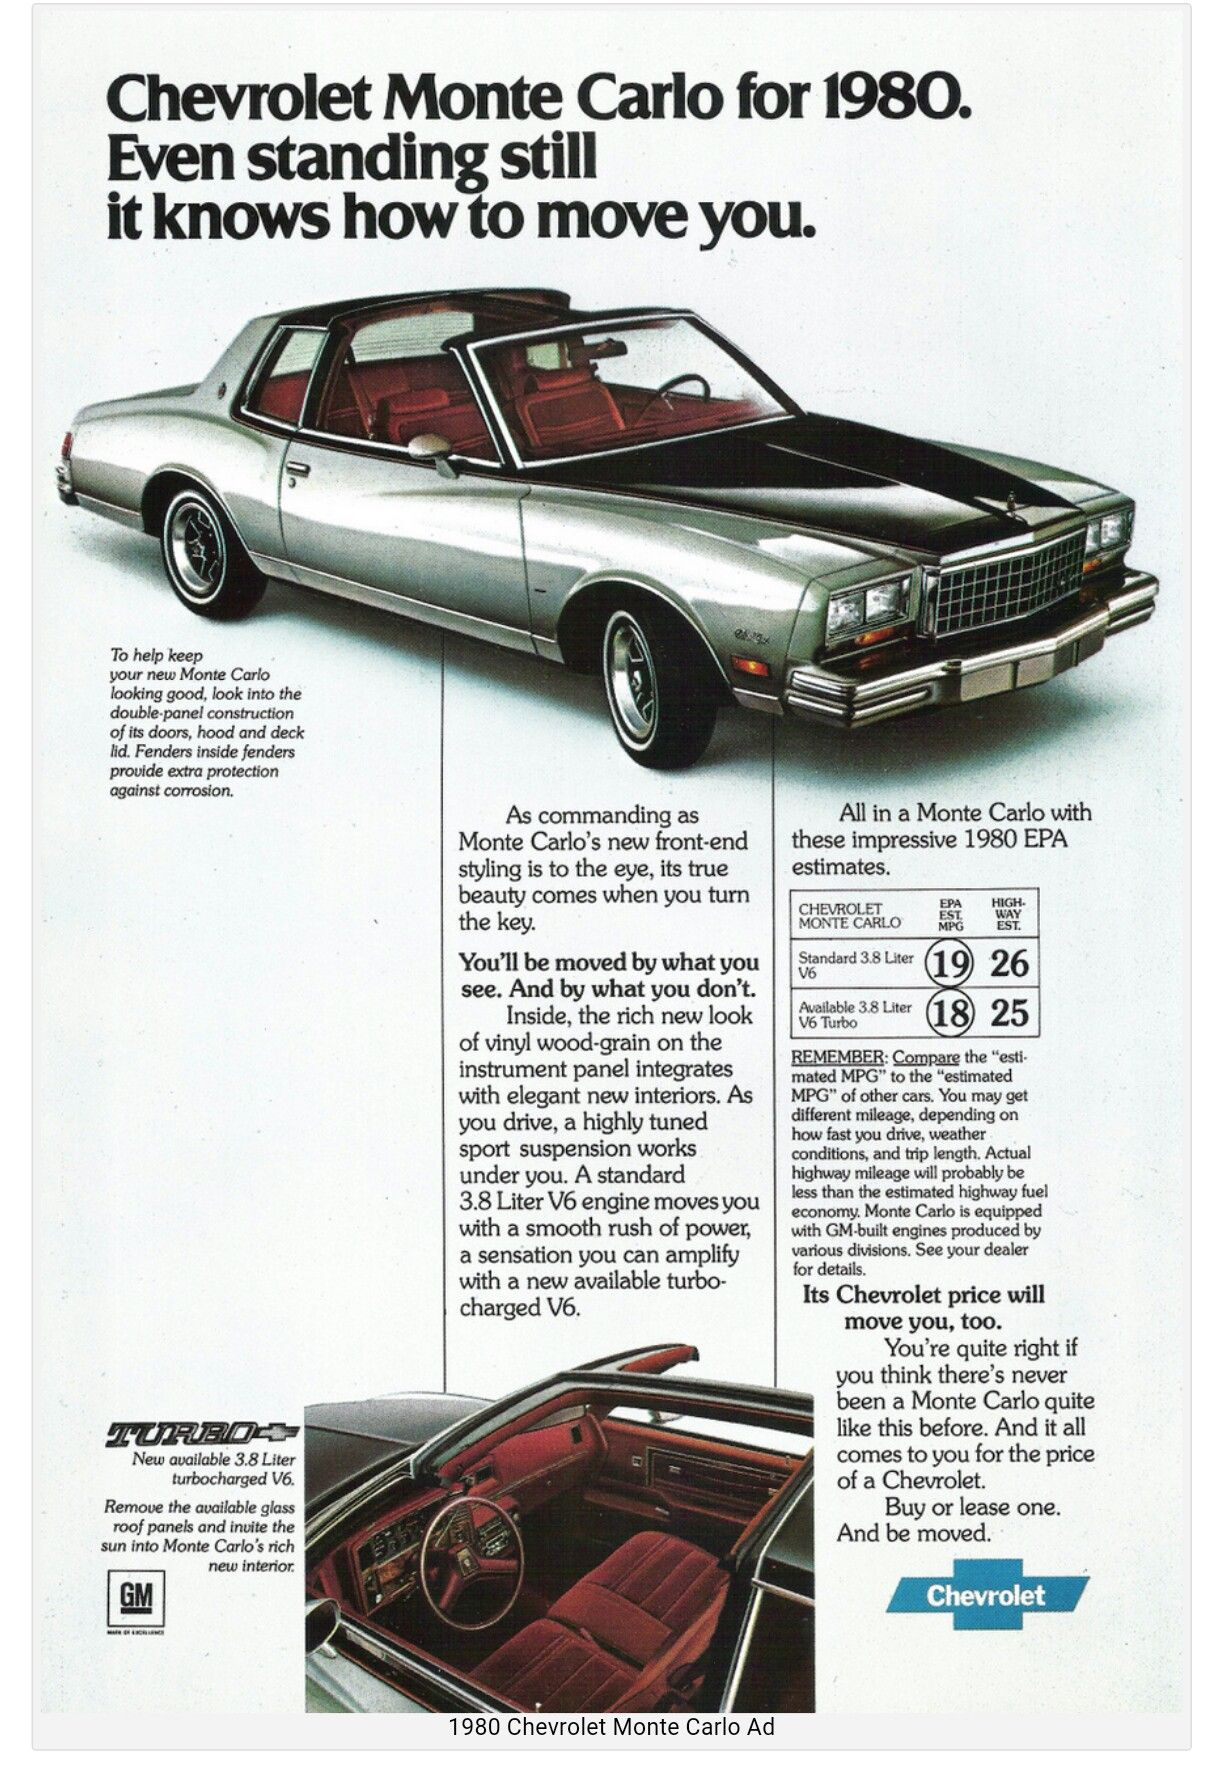 1980 Chevrolet Monte Carlo Turbo Car Advertising Chevrolet